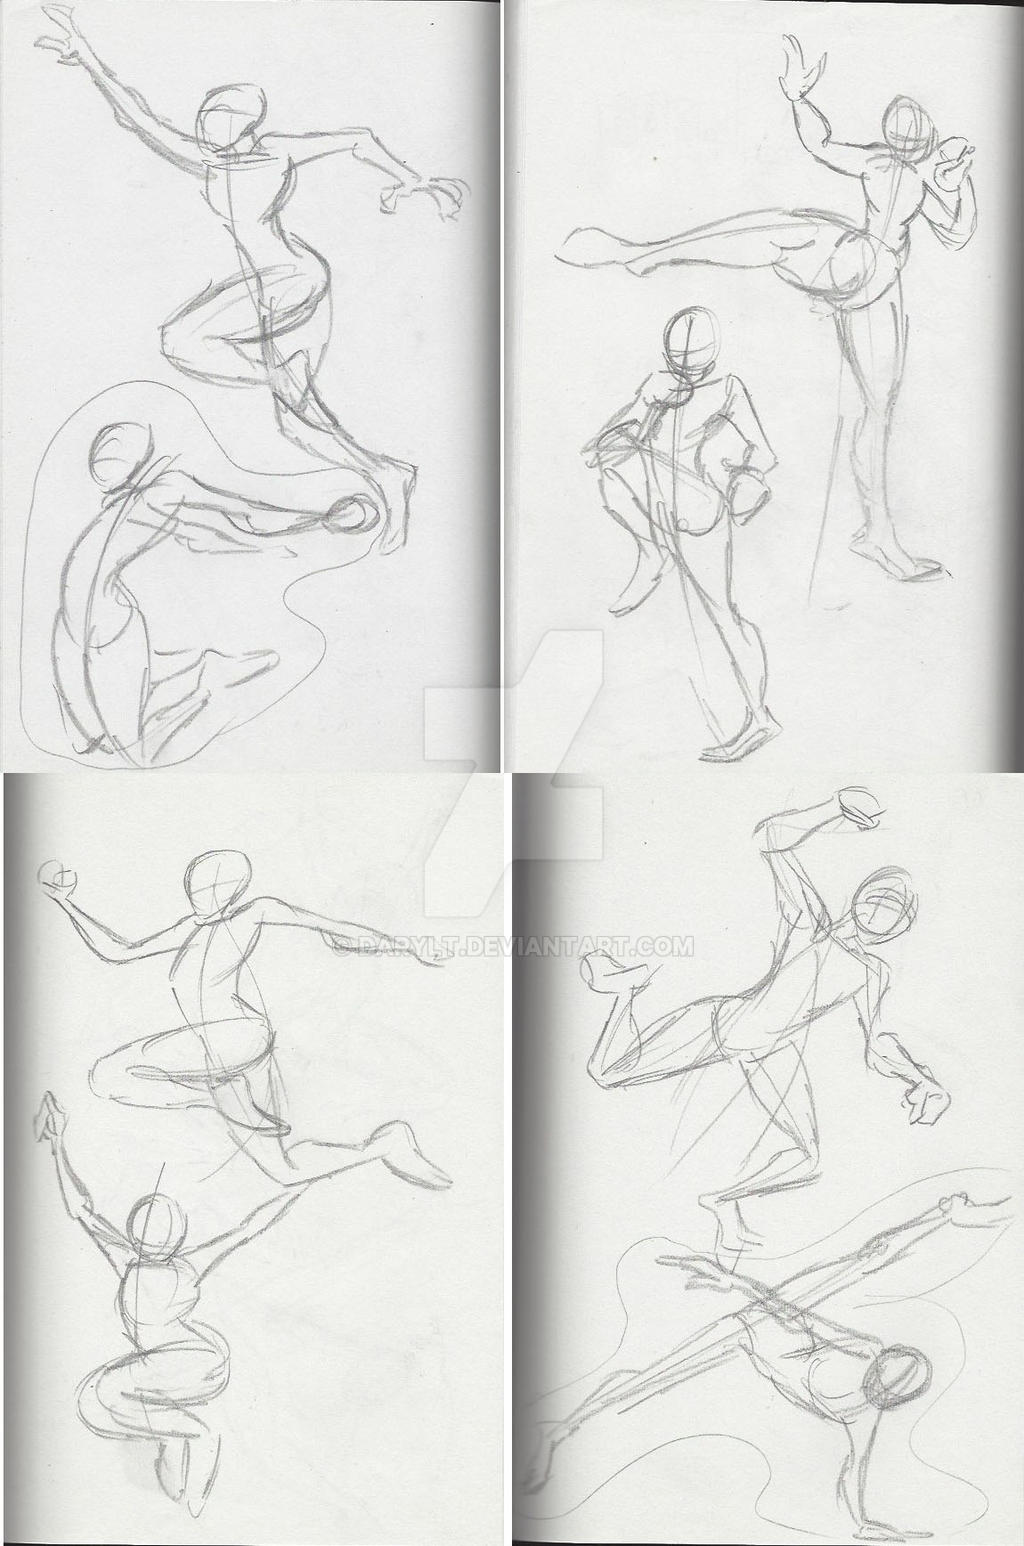 Motion poses 2 multi by DarylT